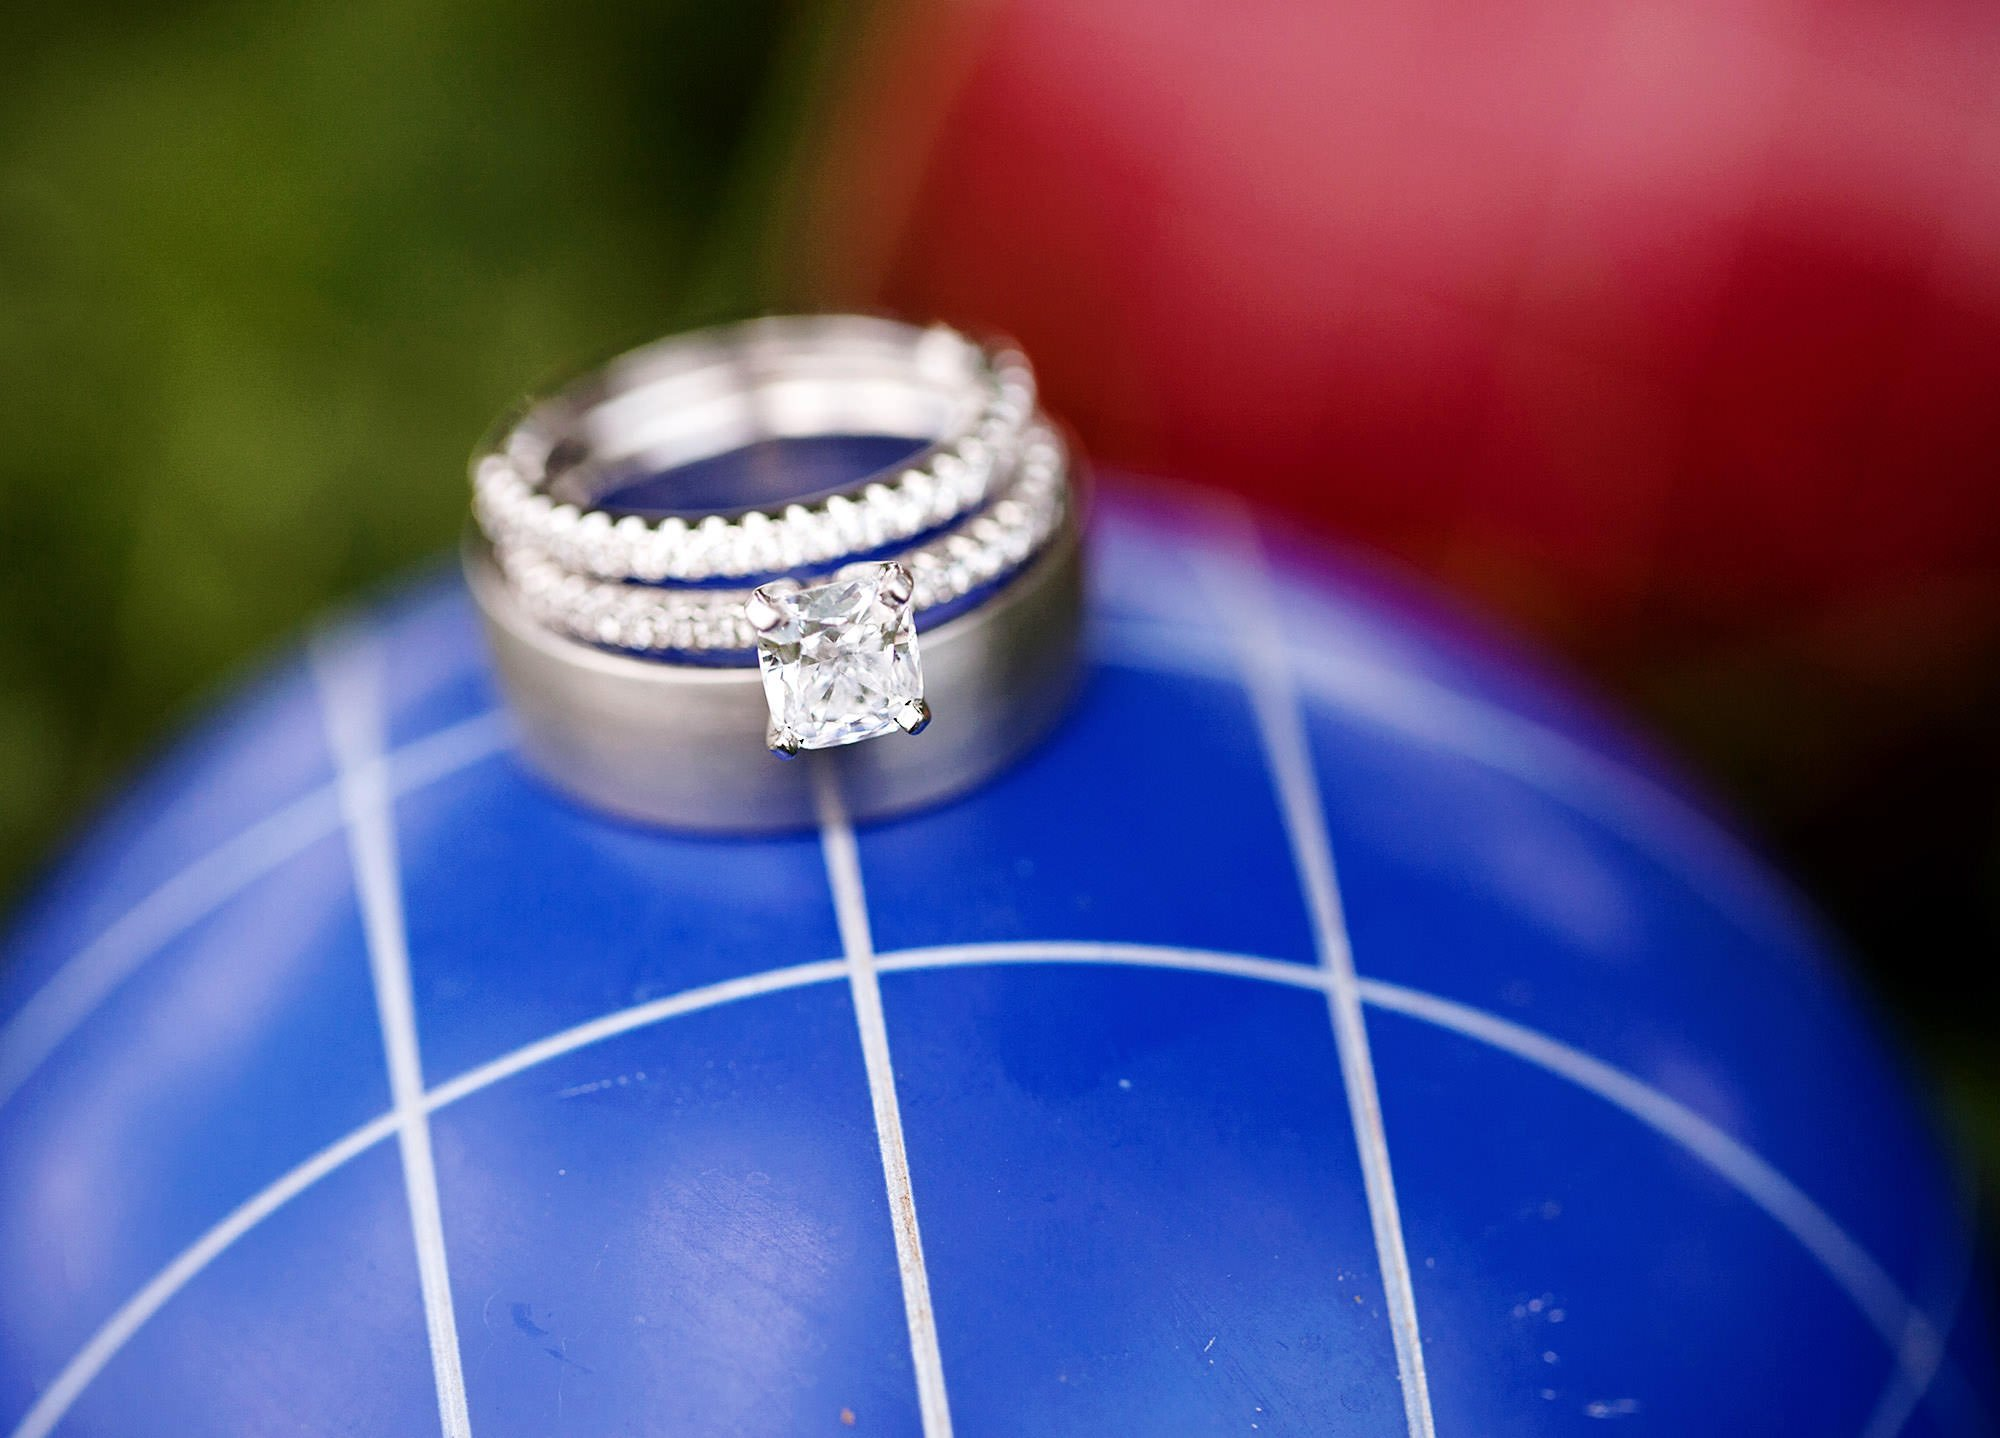 A wedding ring detail with Bocce Balls.